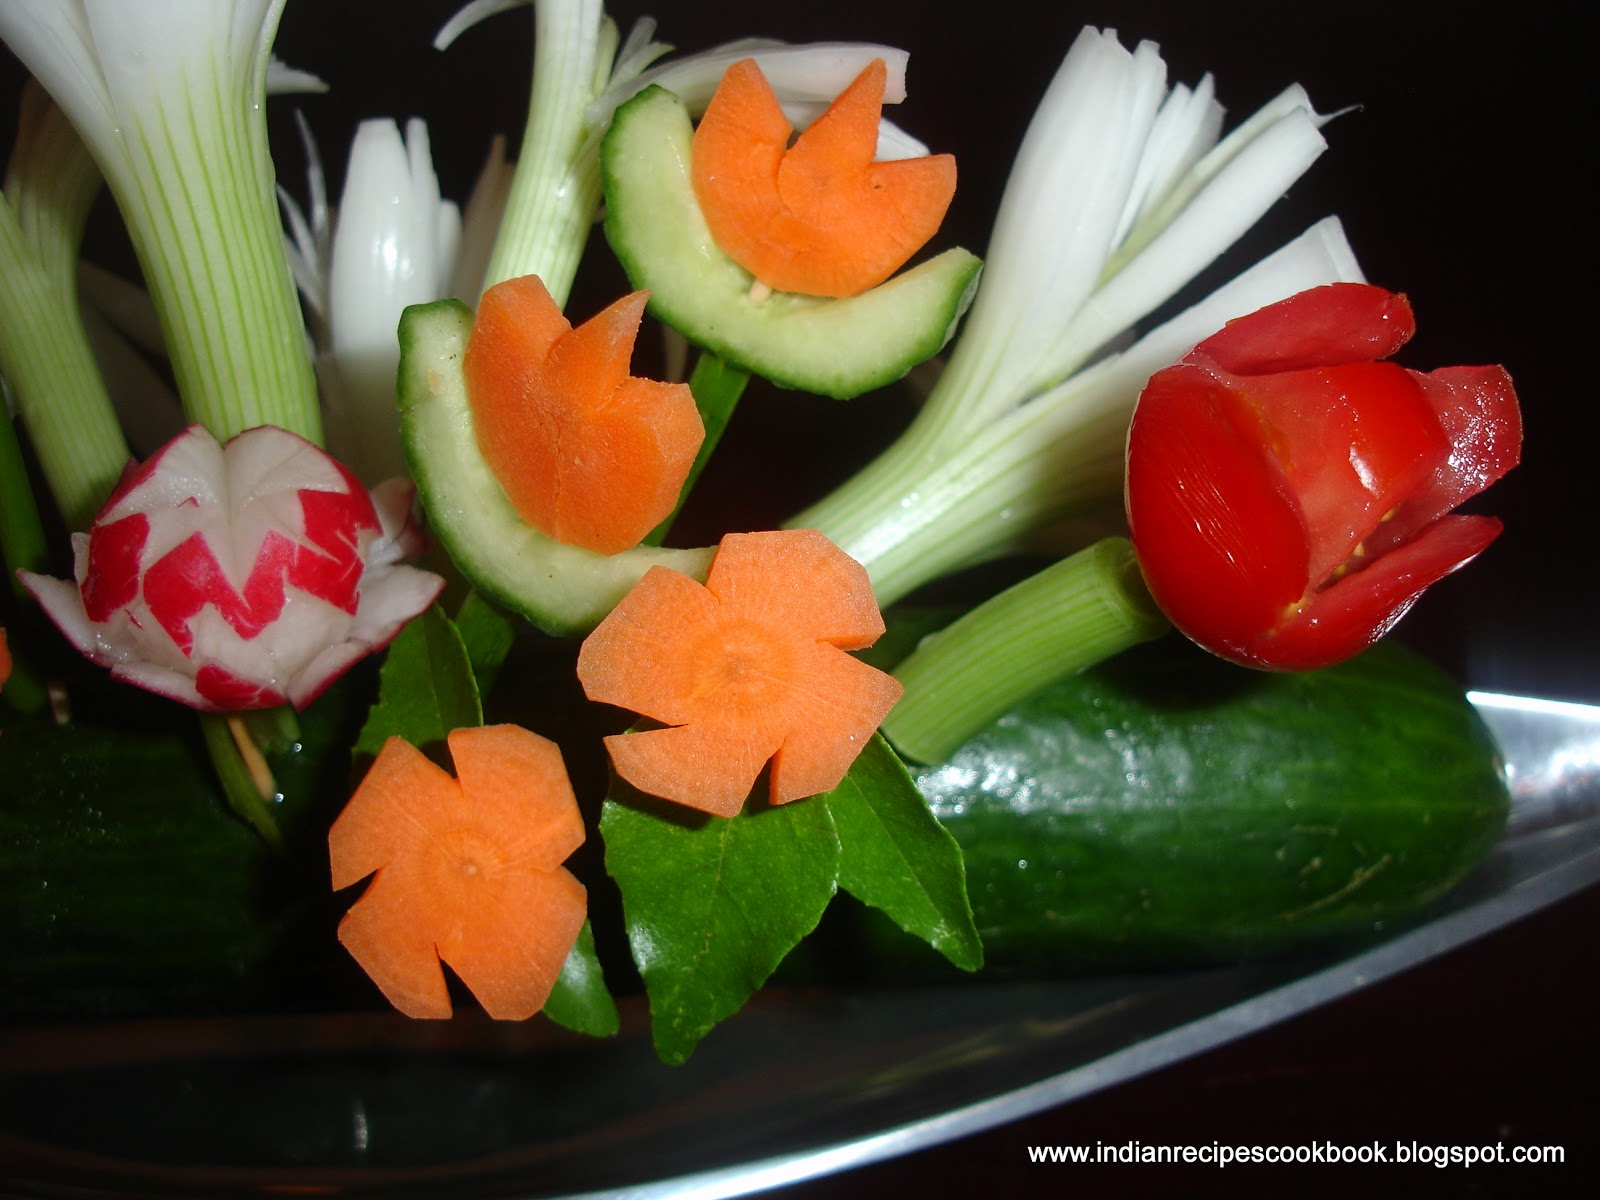 Salad Decoration & Fruit Carvings